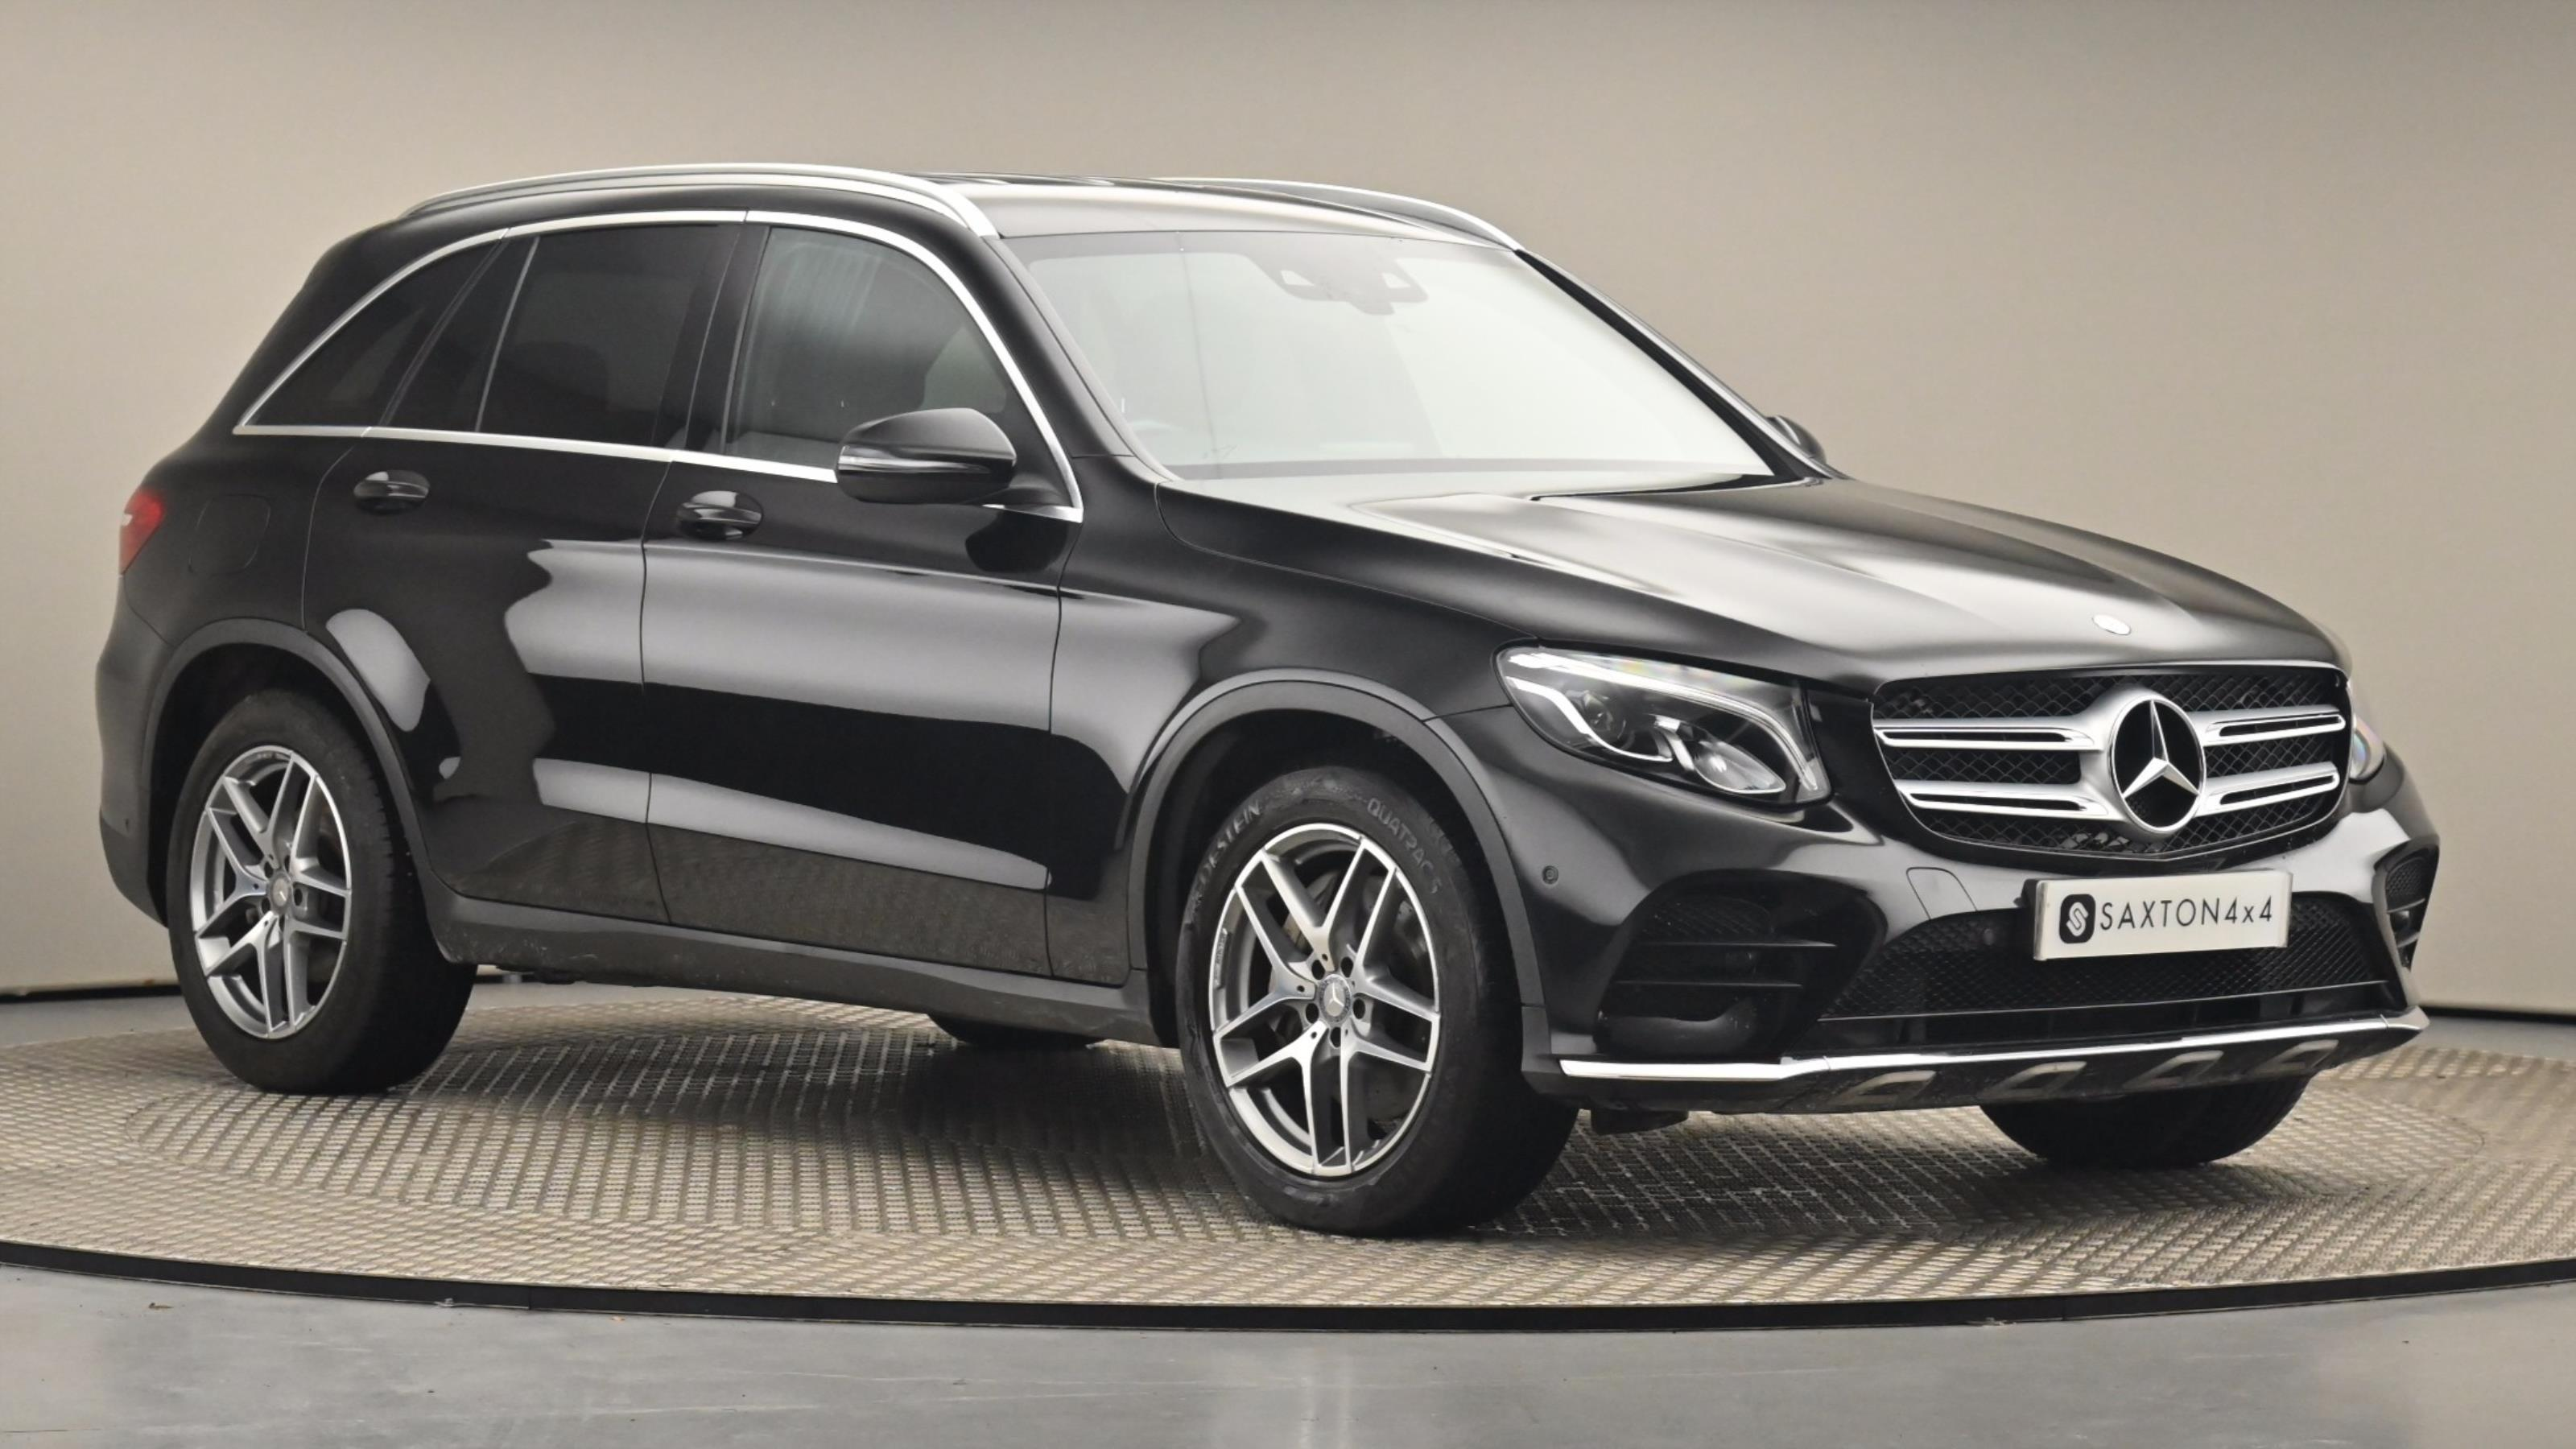 Used 2016 Mercedes-Benz GLC GLC 220d 4Matic AMG Line 5dr 9G-Tronic at Saxton4x4